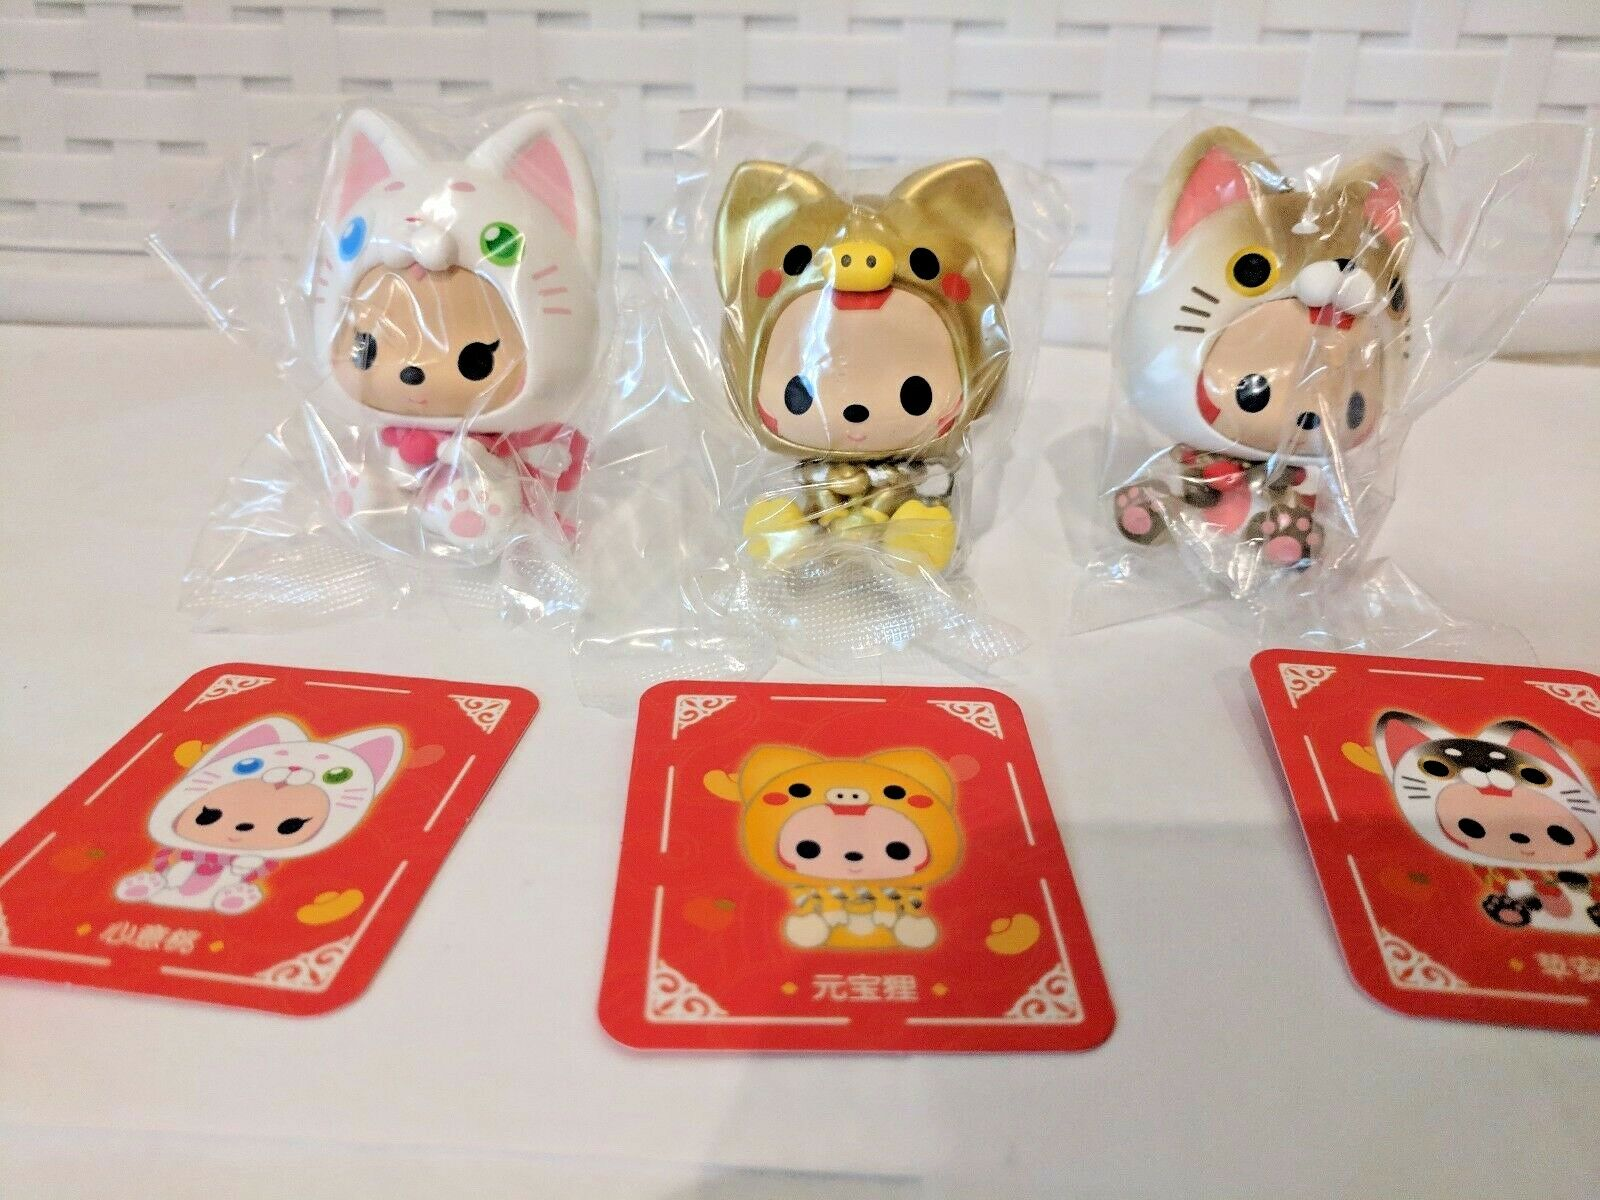 Ali's Mini Figure- New Year Cats Set, 2 cats & 1 pig + red envelopes 2019